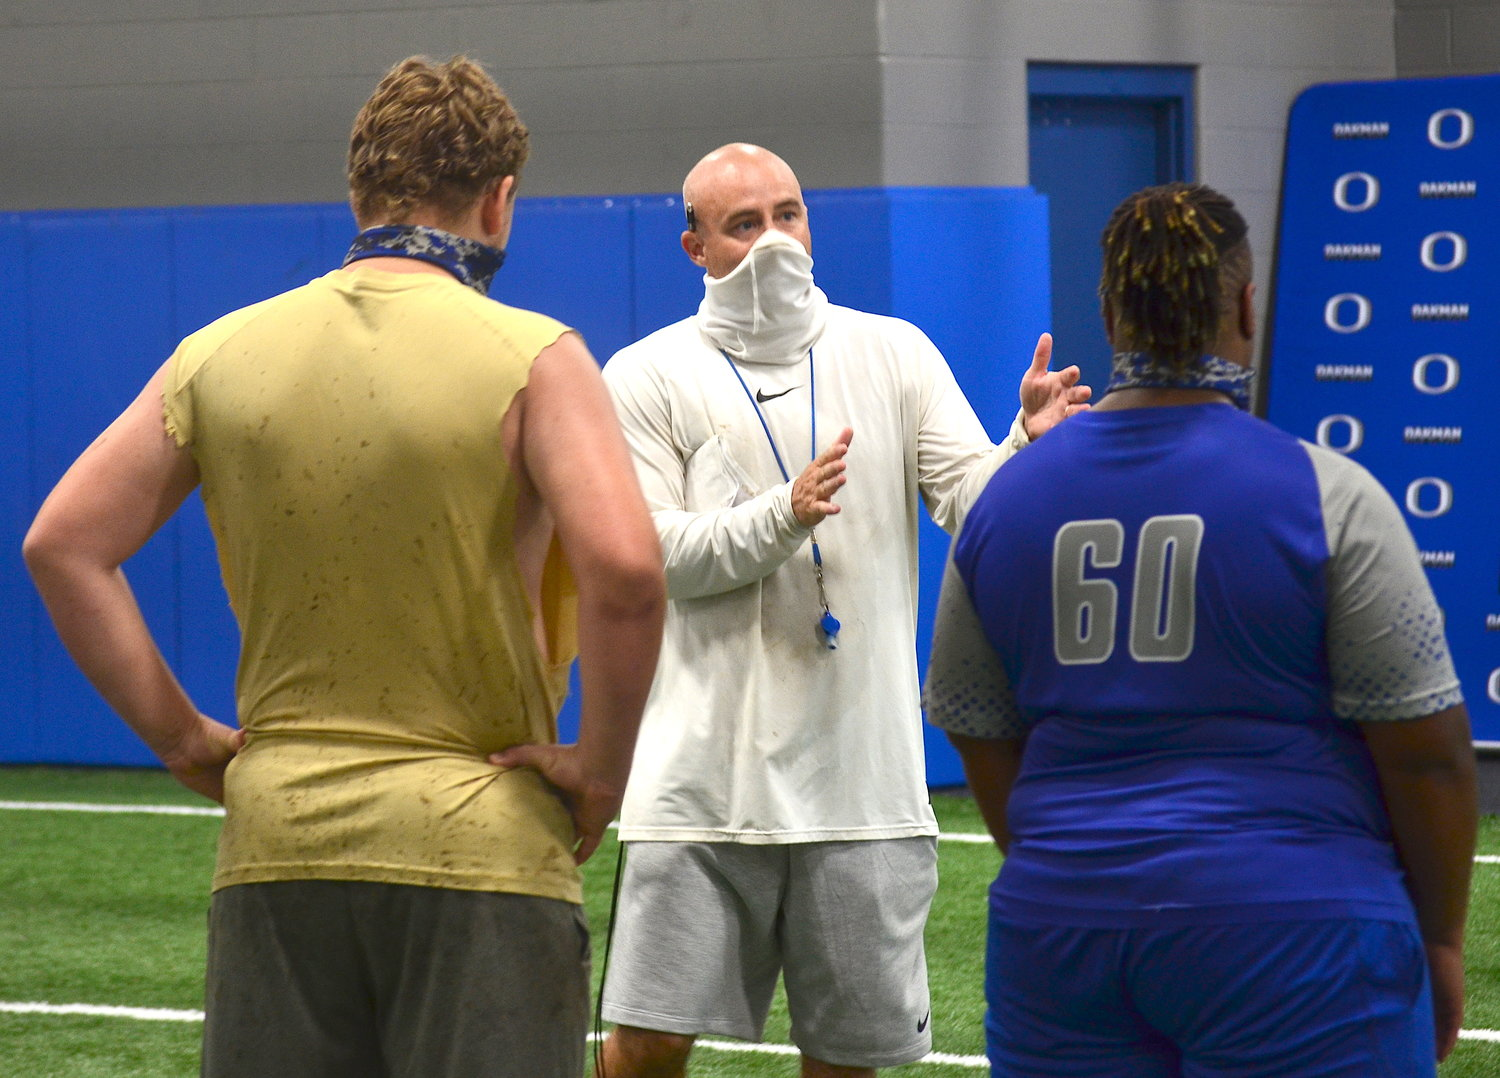 Oakman football coach Ryan Hall talks to players in the indoor practice facility during a practice this week. Hall is beginning his second season as the Wildcats' head coach. Oakman is scheduled to start the season at home on Aug. 21 against Gordo.